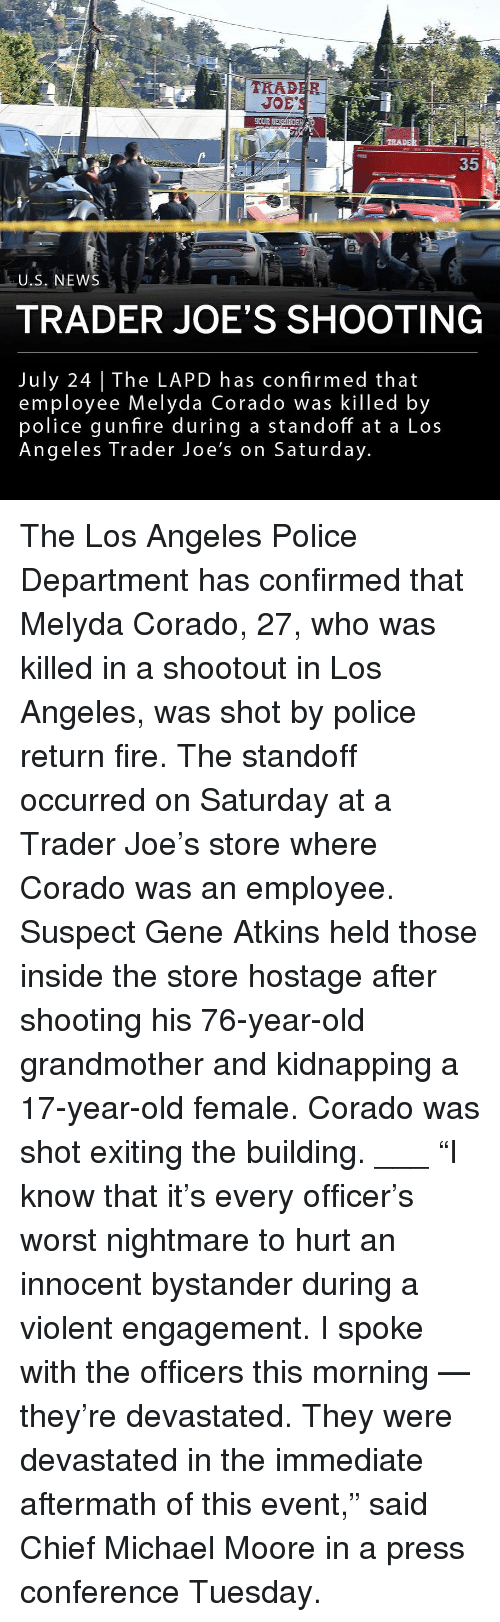 "joes: 1-2  TRAD  EOUR  35  U.S. NEWS  TRADER JOE'S SHOOTING  July 24 The LAPD has confirmed that  employee Melyda Corado was killed by  police gunfire during a standoff at a Los  Angeles Trader Joe's on Saturday The Los Angeles Police Department has confirmed that Melyda Corado, 27, who was killed in a shootout in Los Angeles, was shot by police return fire. The standoff occurred on Saturday at a Trader Joe's store where Corado was an employee. Suspect Gene Atkins held those inside the store hostage after shooting his 76-year-old grandmother and kidnapping a 17-year-old female. Corado was shot exiting the building. ___ ""I know that it's every officer's worst nightmare to hurt an innocent bystander during a violent engagement. I spoke with the officers this morning — they're devastated. They were devastated in the immediate aftermath of this event,"" said Chief Michael Moore in a press conference Tuesday."